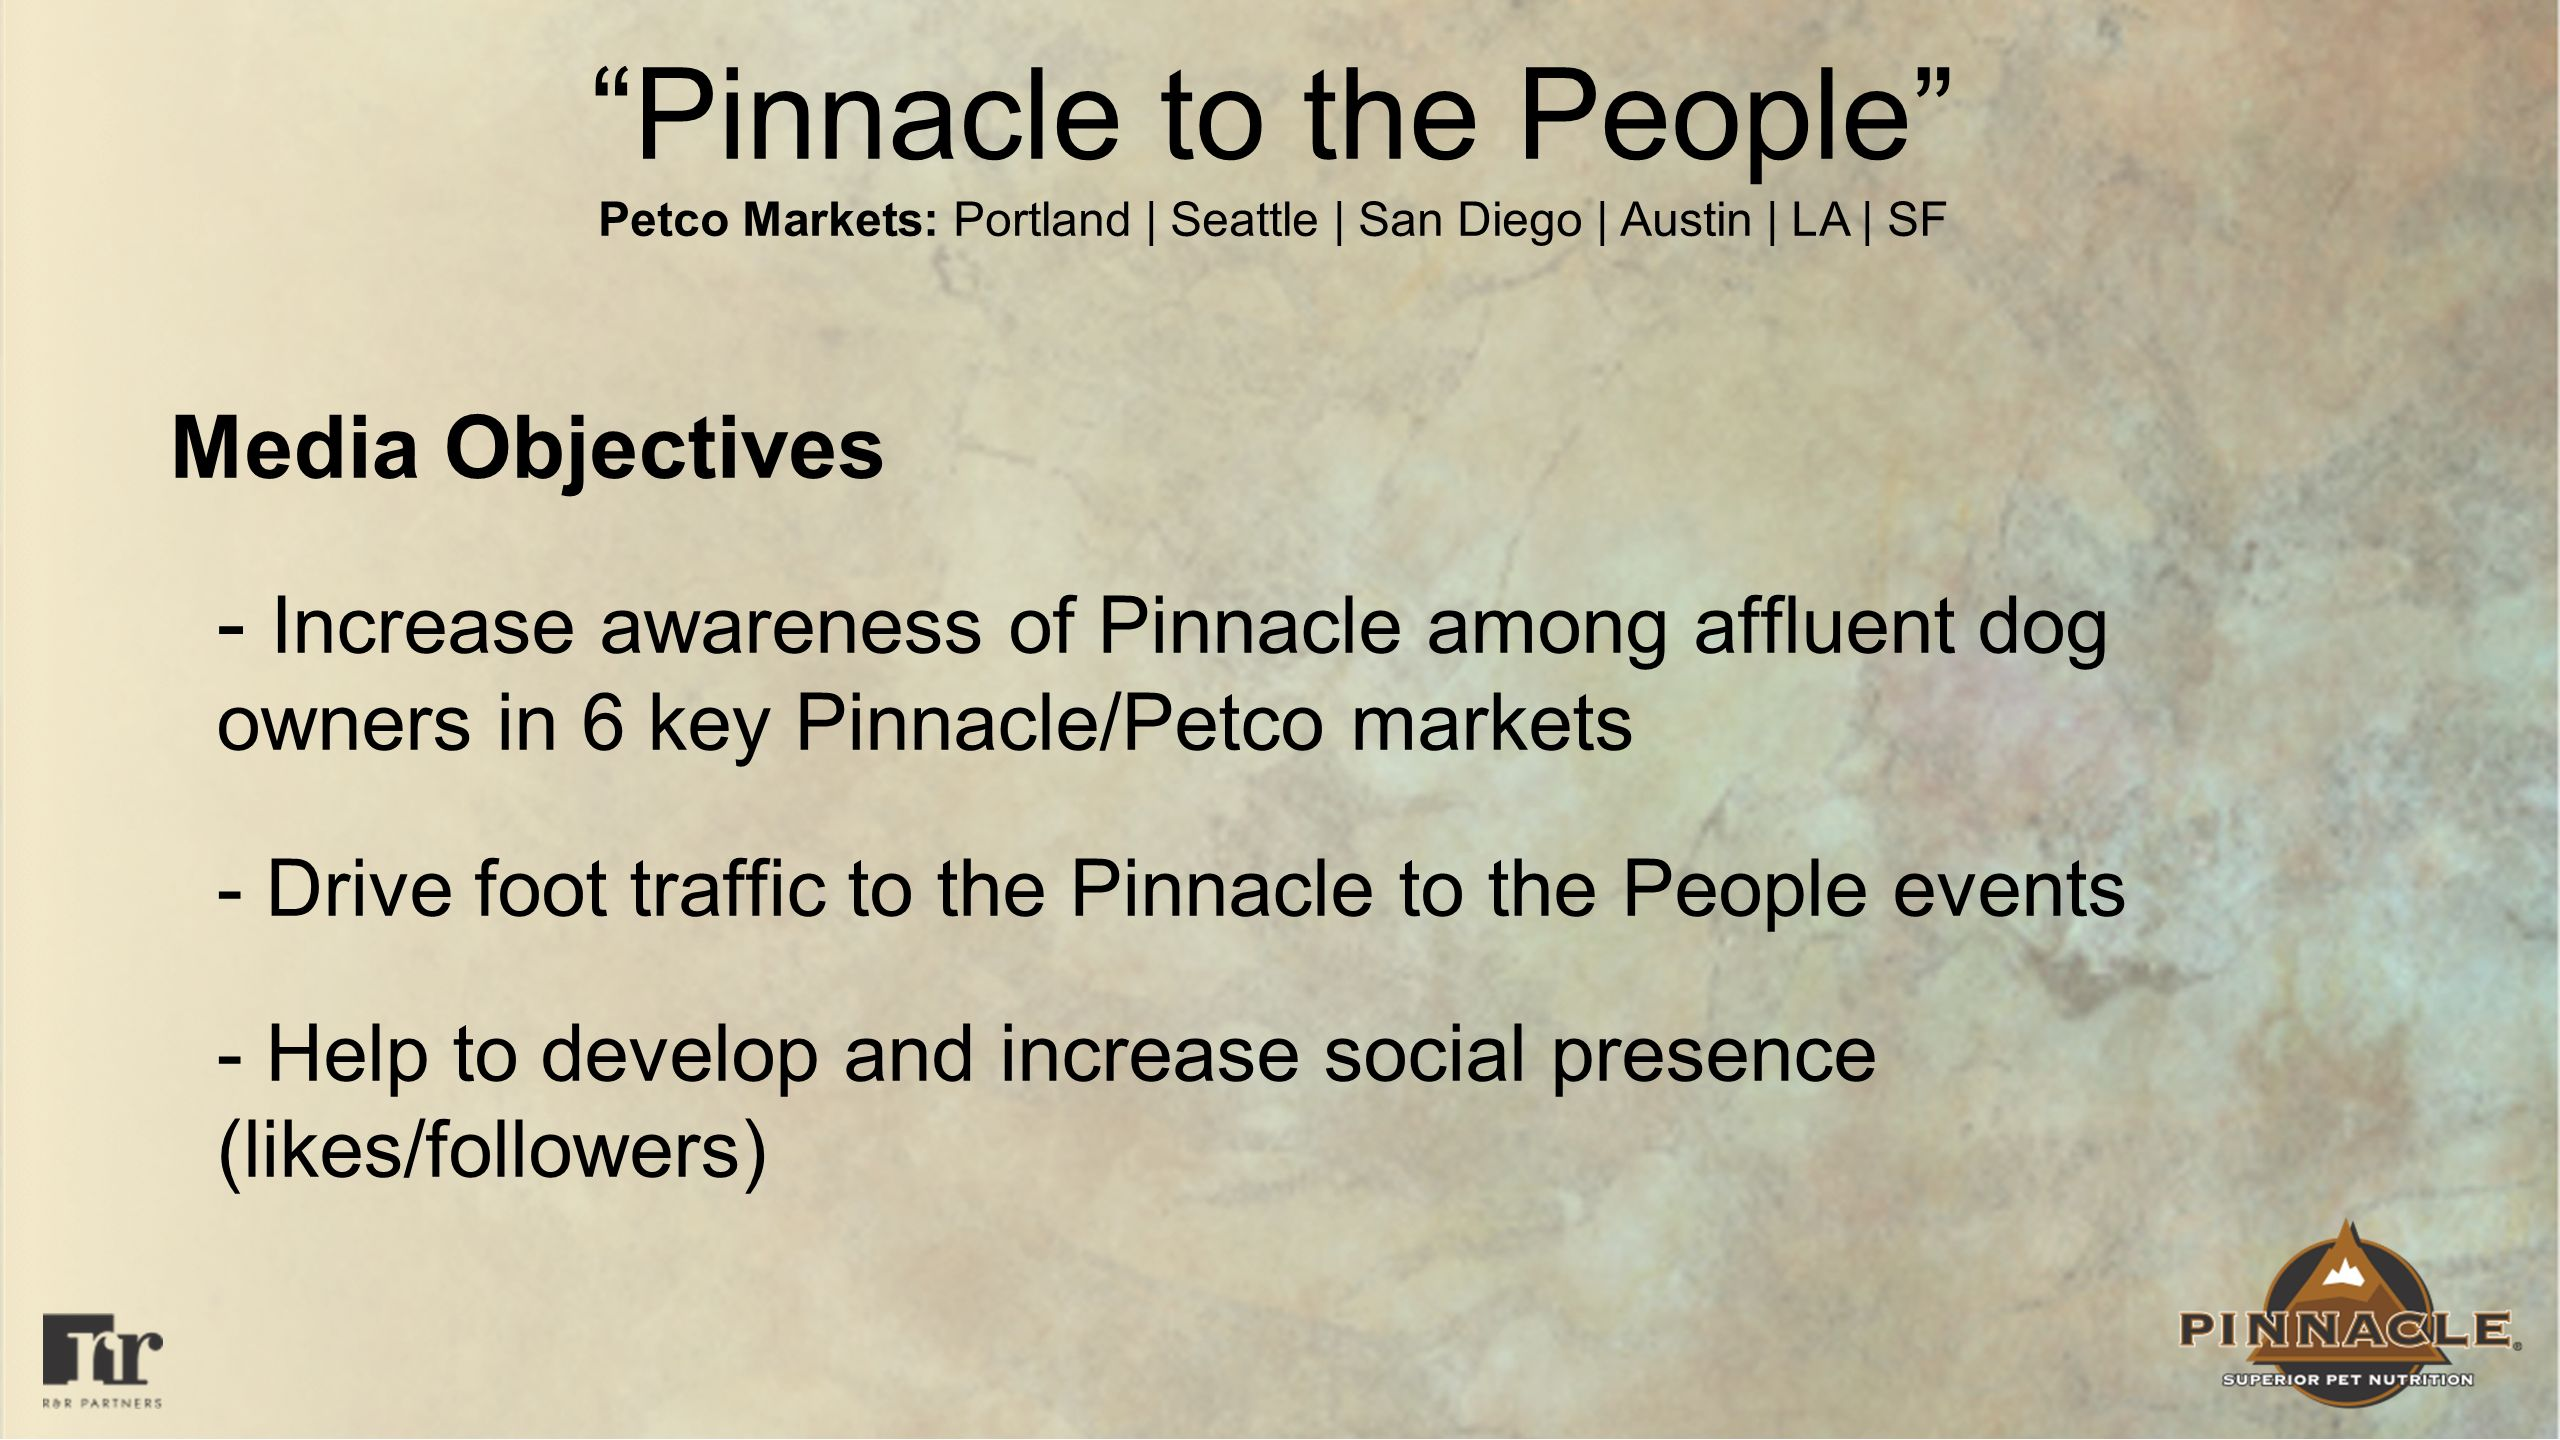 Pinnacle to the People Petco Markets: Portland | Seattle | San Diego | Austin | LA | SF Media Objectives - Increase awareness of Pinnacle among affluent dog owners in 6 key Pinnacle/Petco markets - Drive foot traffic to the Pinnacle to the People events - Help to develop and increase social presence (likes/followers)